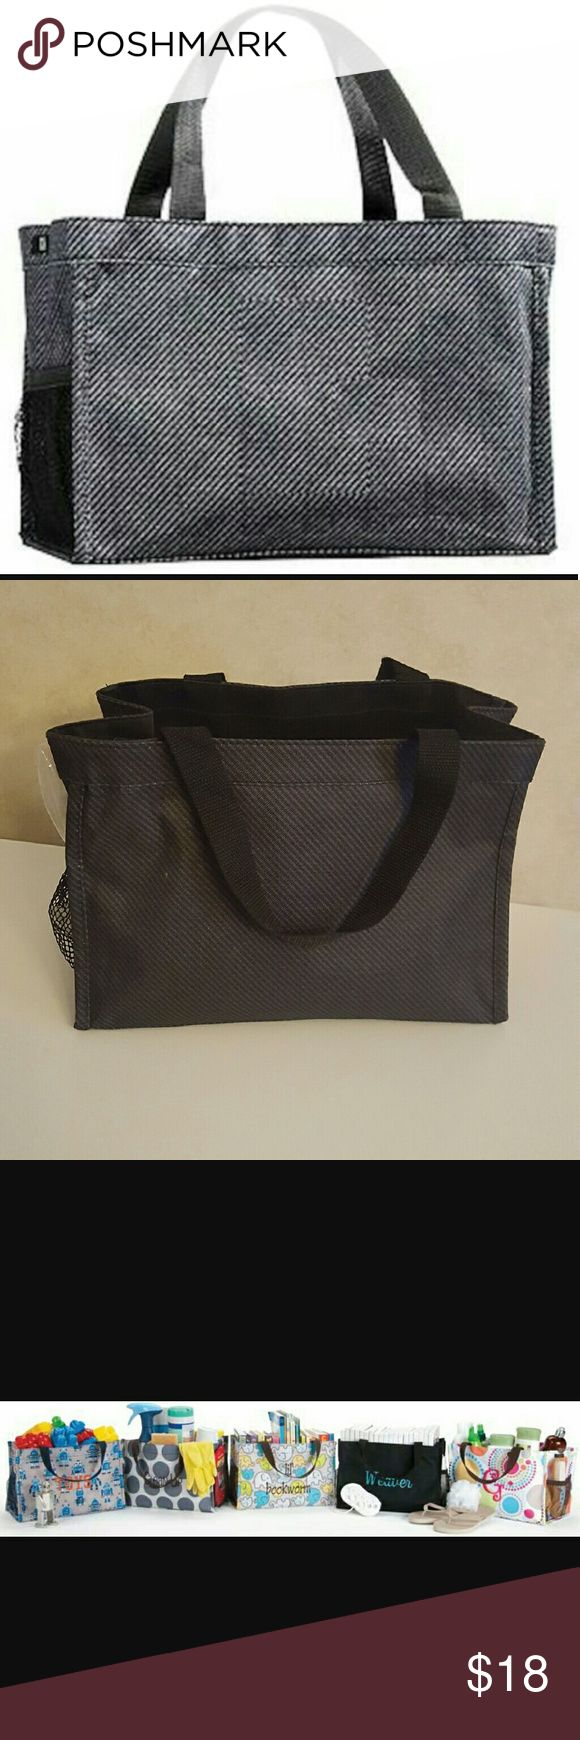 Thirty-One All In One Organizer Textured Twill Bla Thirty-One All In One Organizer in Textured Twill pattern, still brand new! It is open at the top, has pockets on  the outside and sturdy webbed handles.   This bag has SO many uses! It can keep anything organized or use it as a small diaper bag!  Smoke free home. I will gladly bundle items to give you a discount (the more you buy, the cheaper I can let everything go!). Many items can be added on for only $1. Thirty-One  Bags Baby Bags